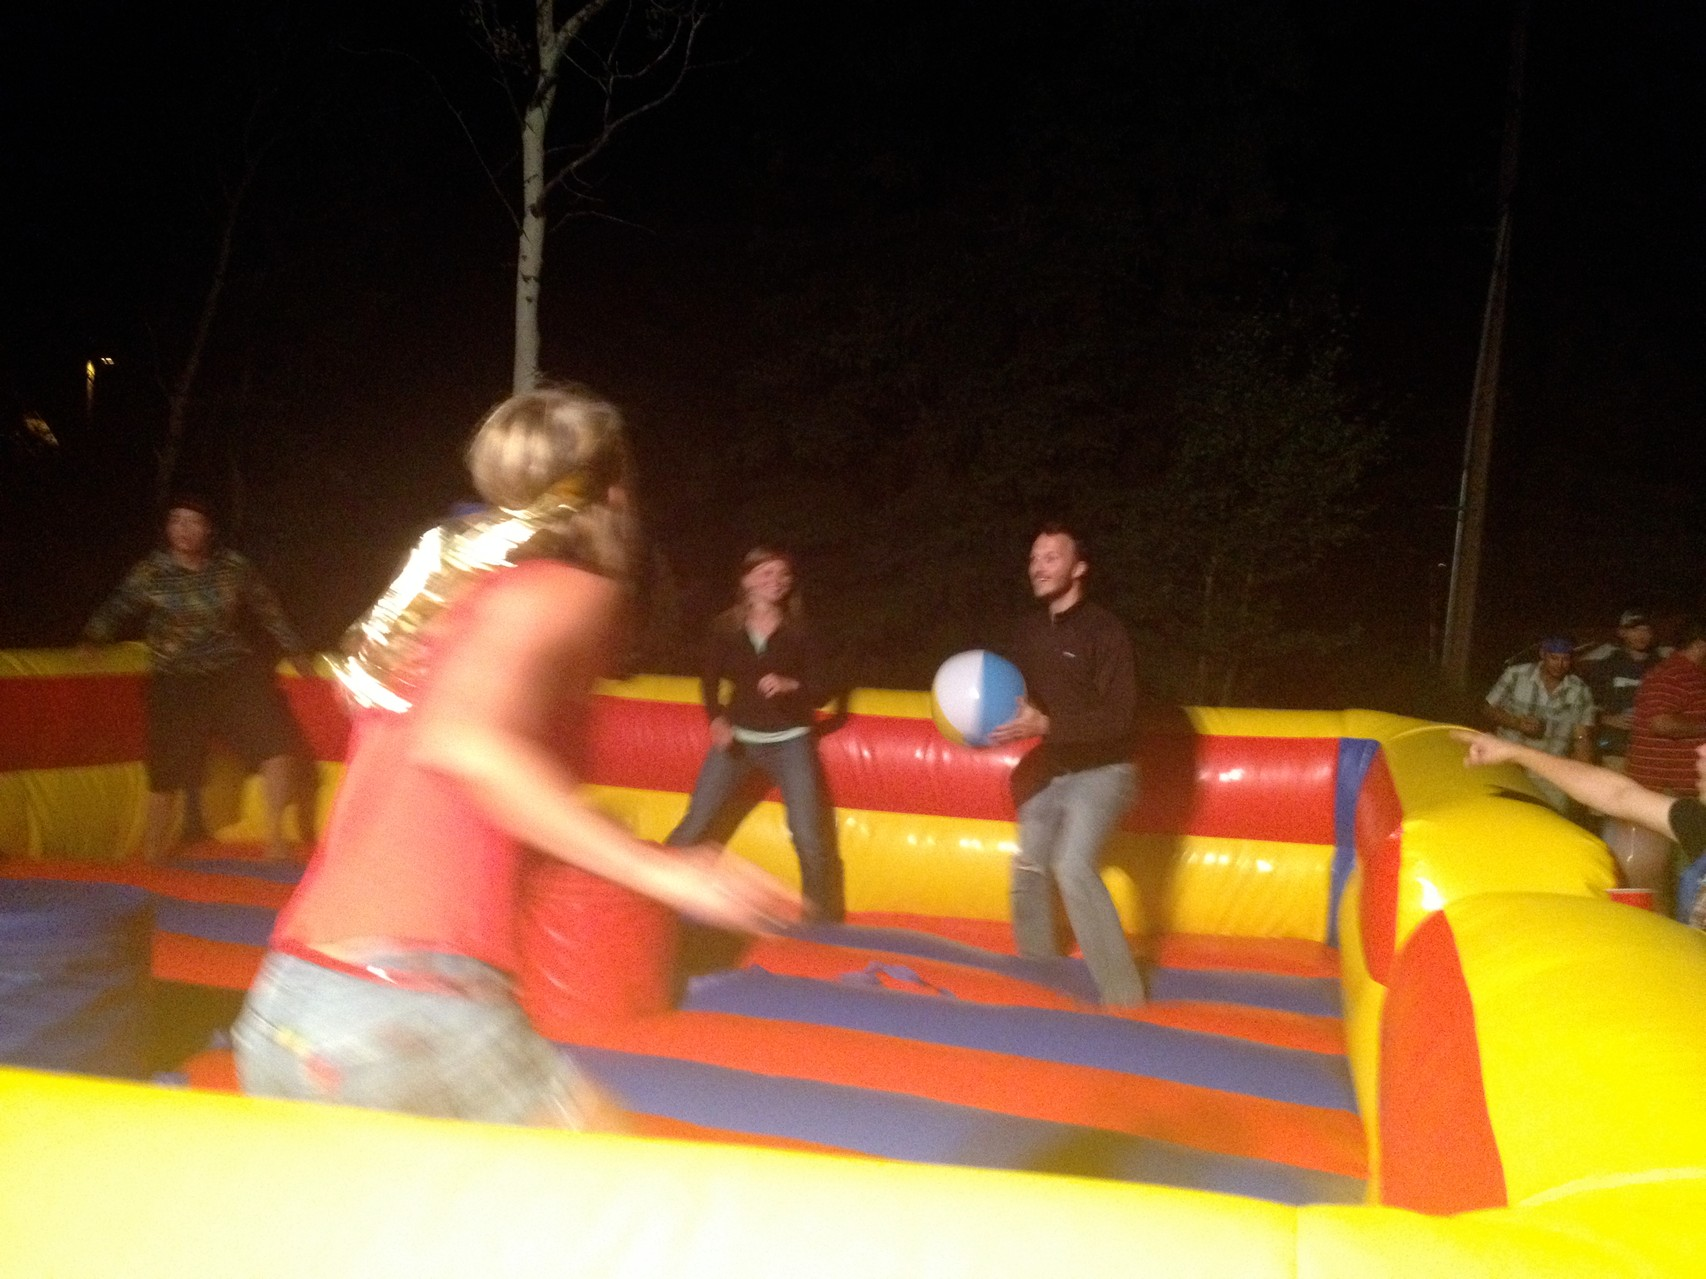 And of course, bouncy dodge ball...